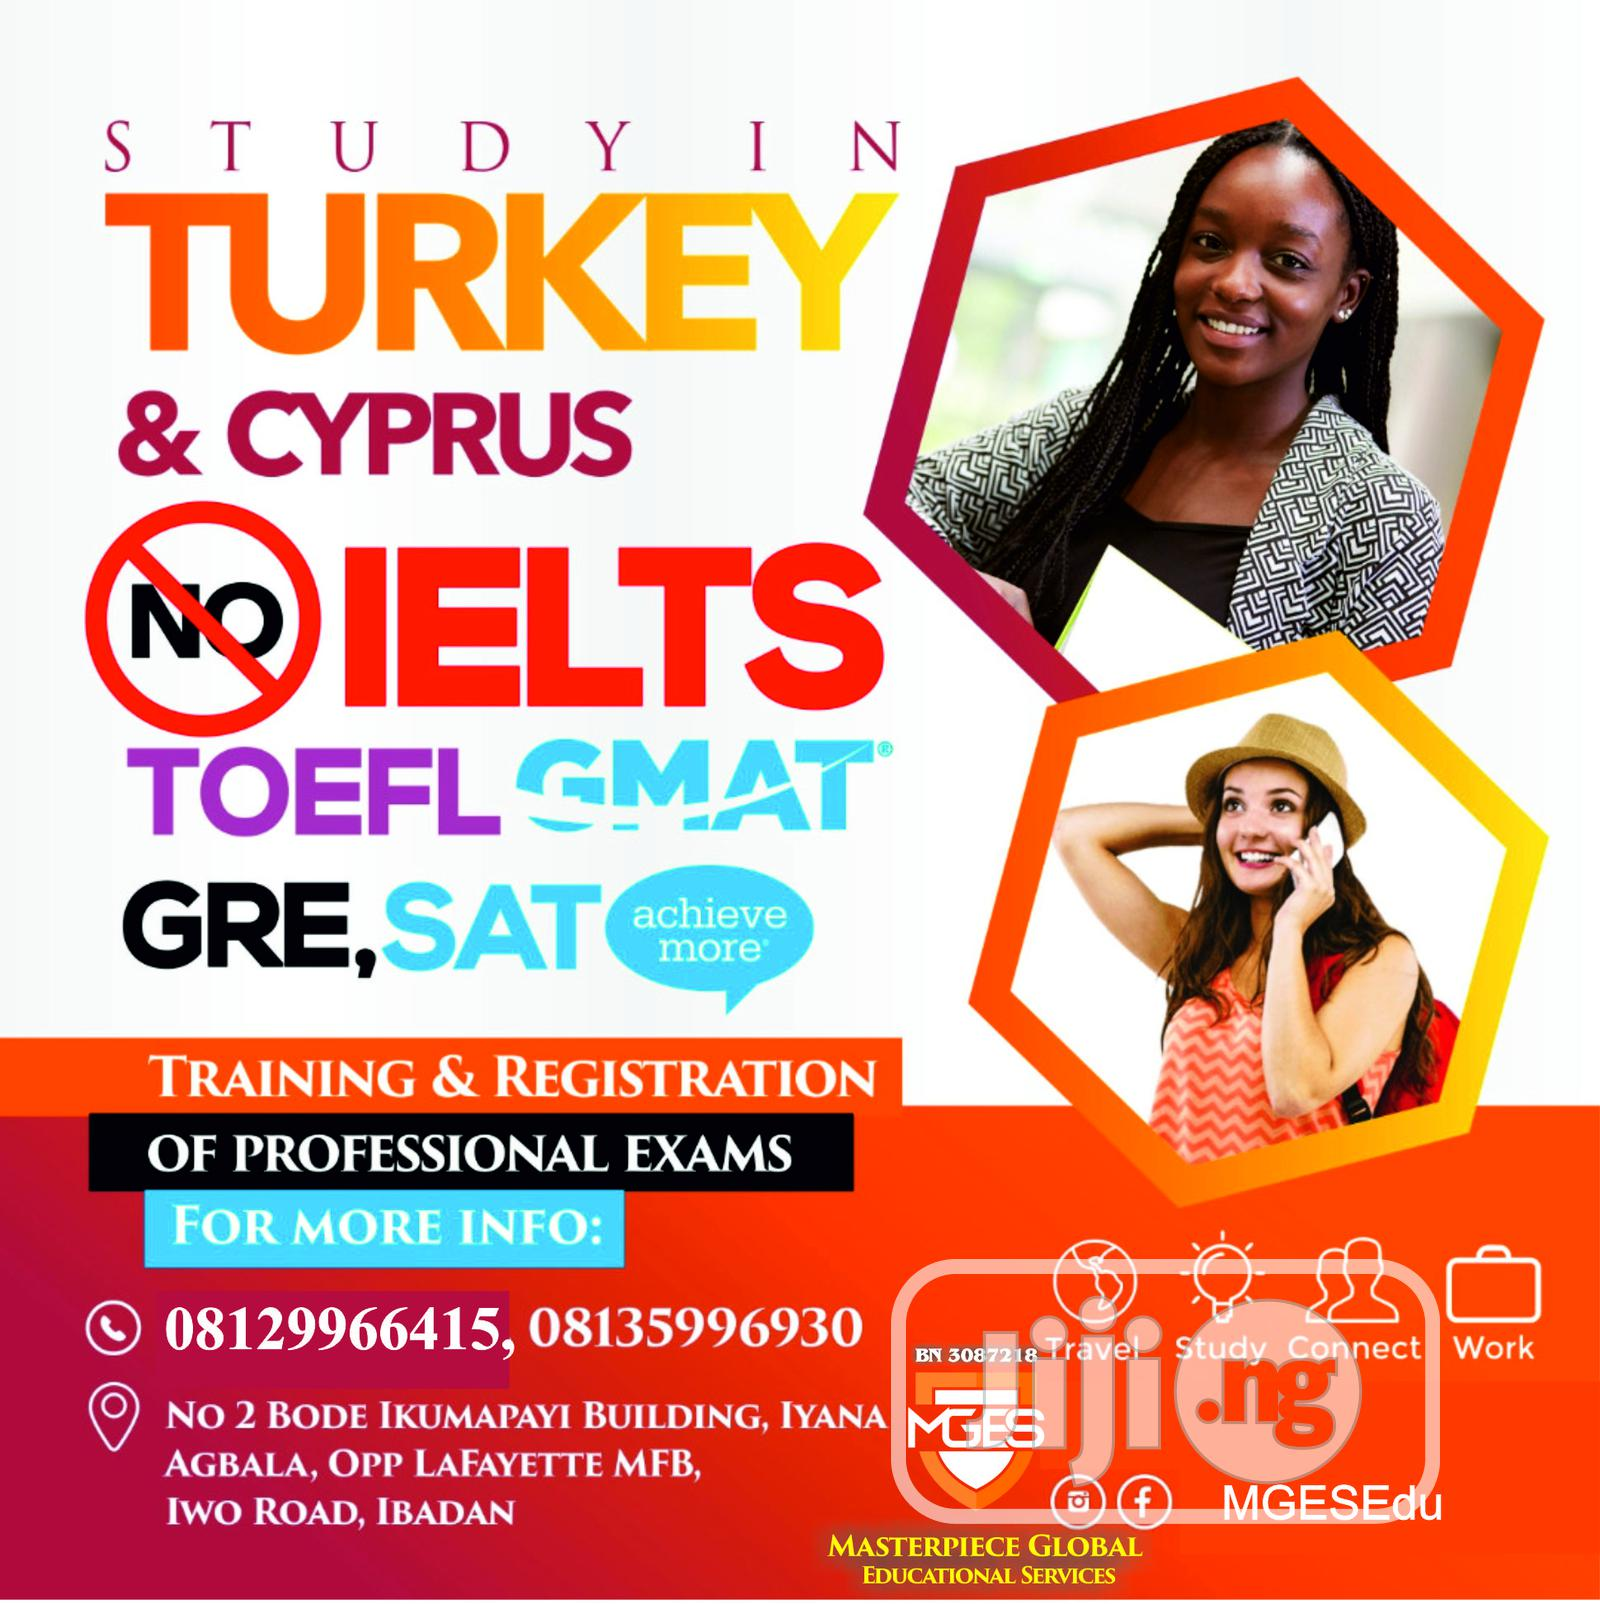 Study in Cyprus and Turkey